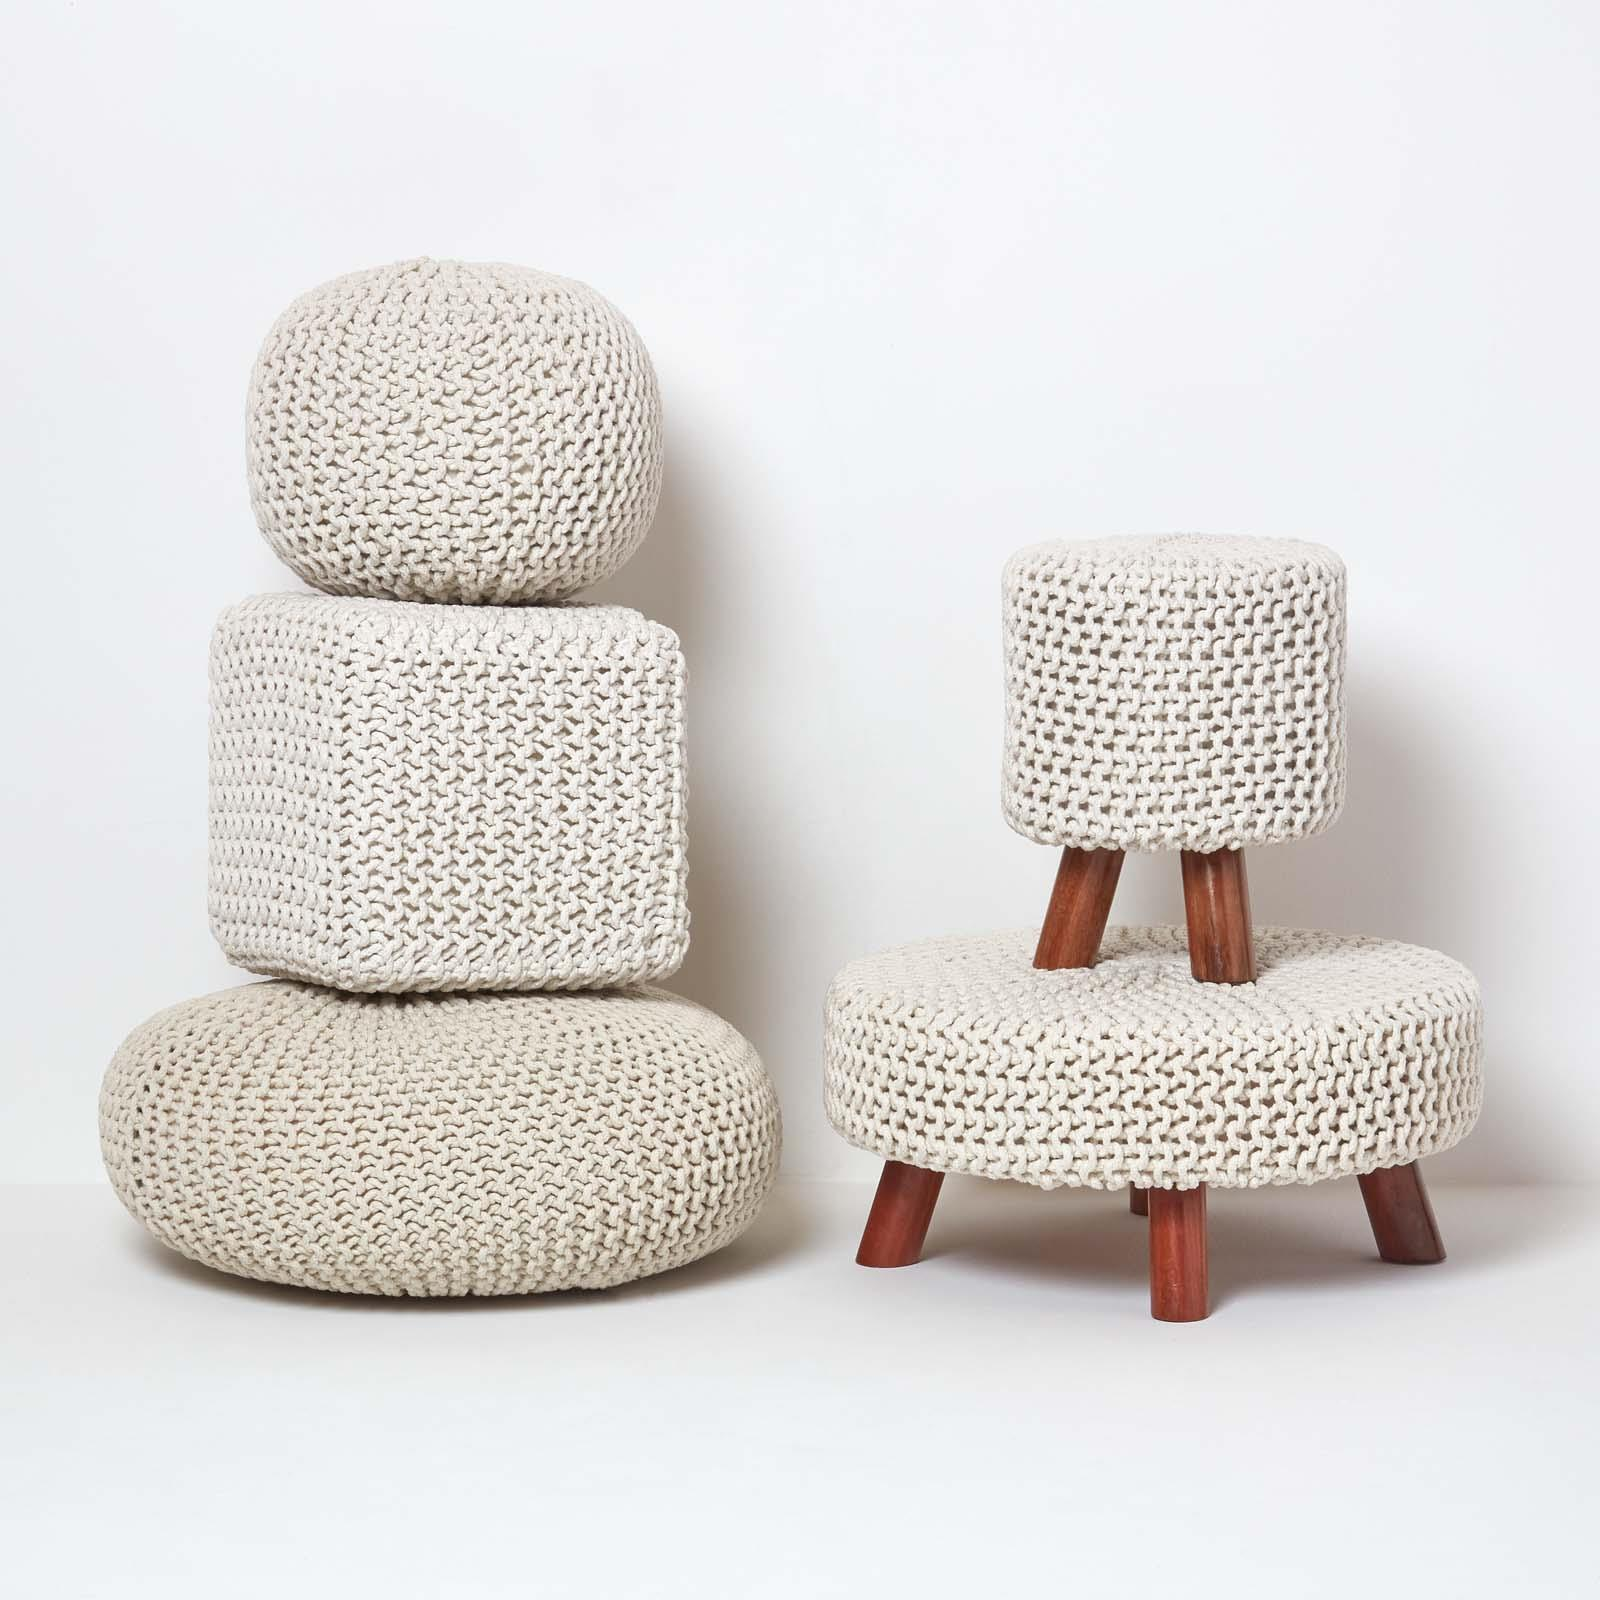 Hand-Knitted-100-Cotton-Pouffes-Round-Sphere-Or-Cube-Square-Chunky-Footstools thumbnail 101